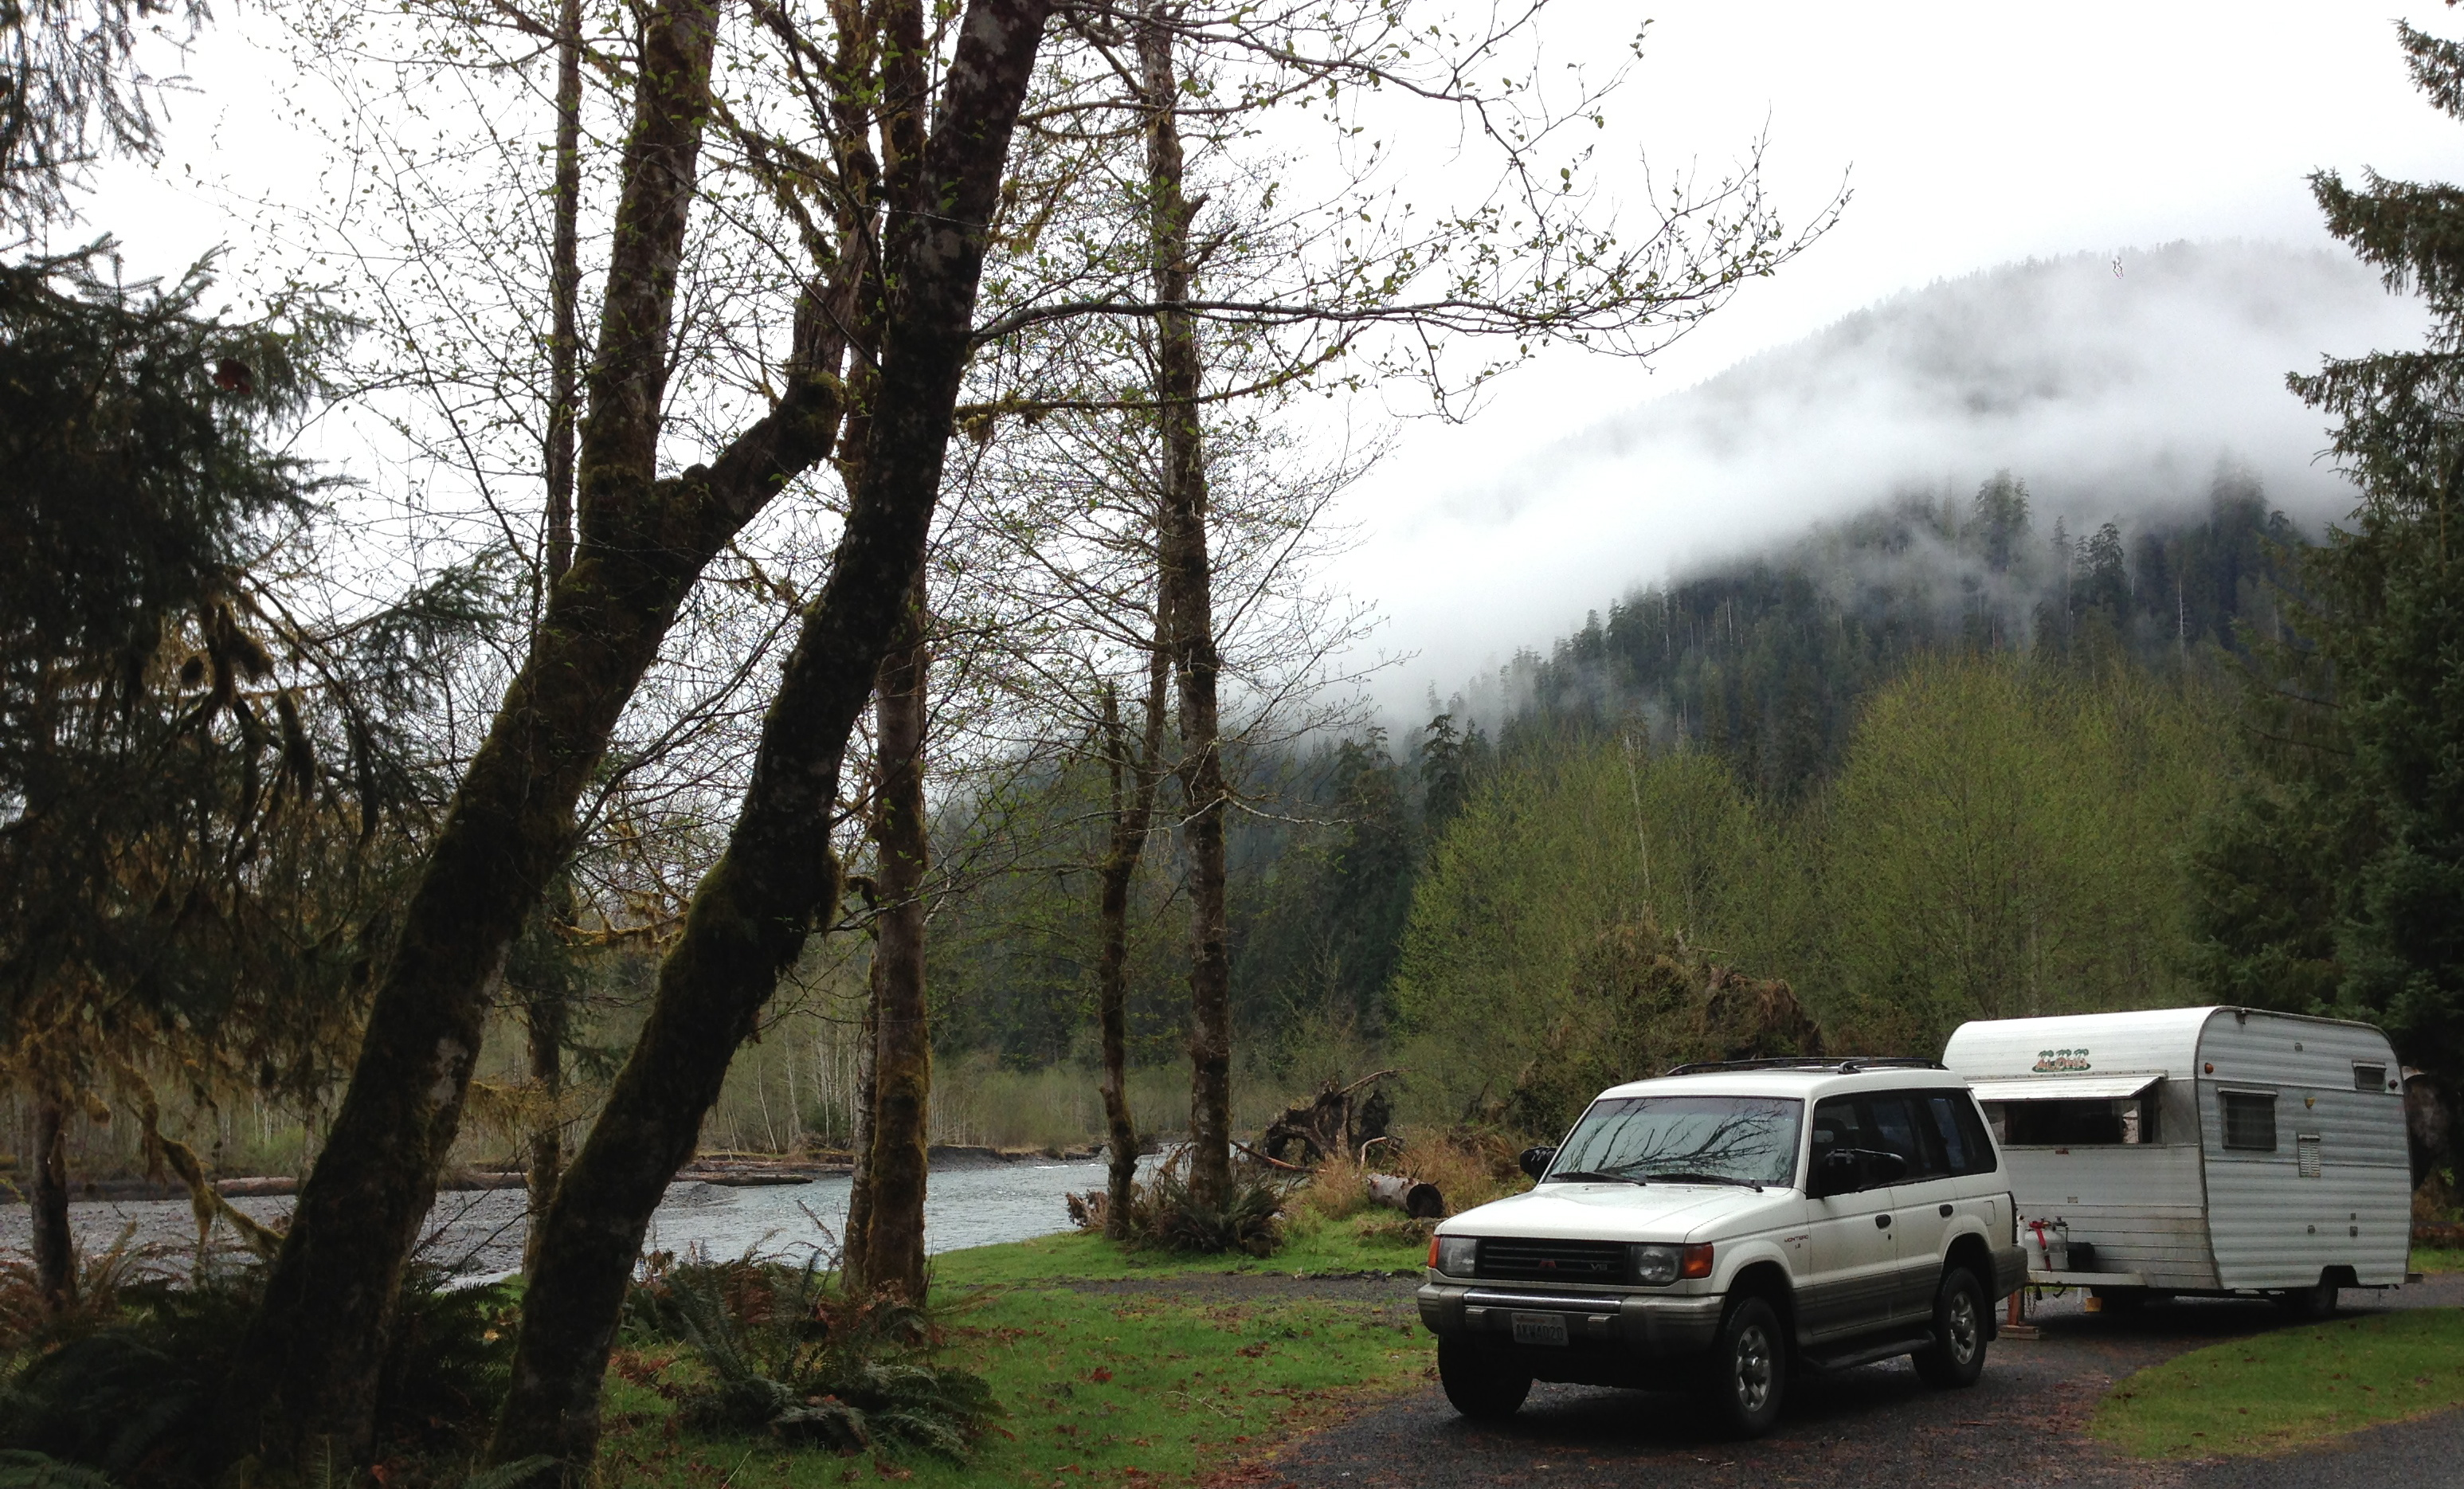 On the Hoh River in the Hoh Rainforest